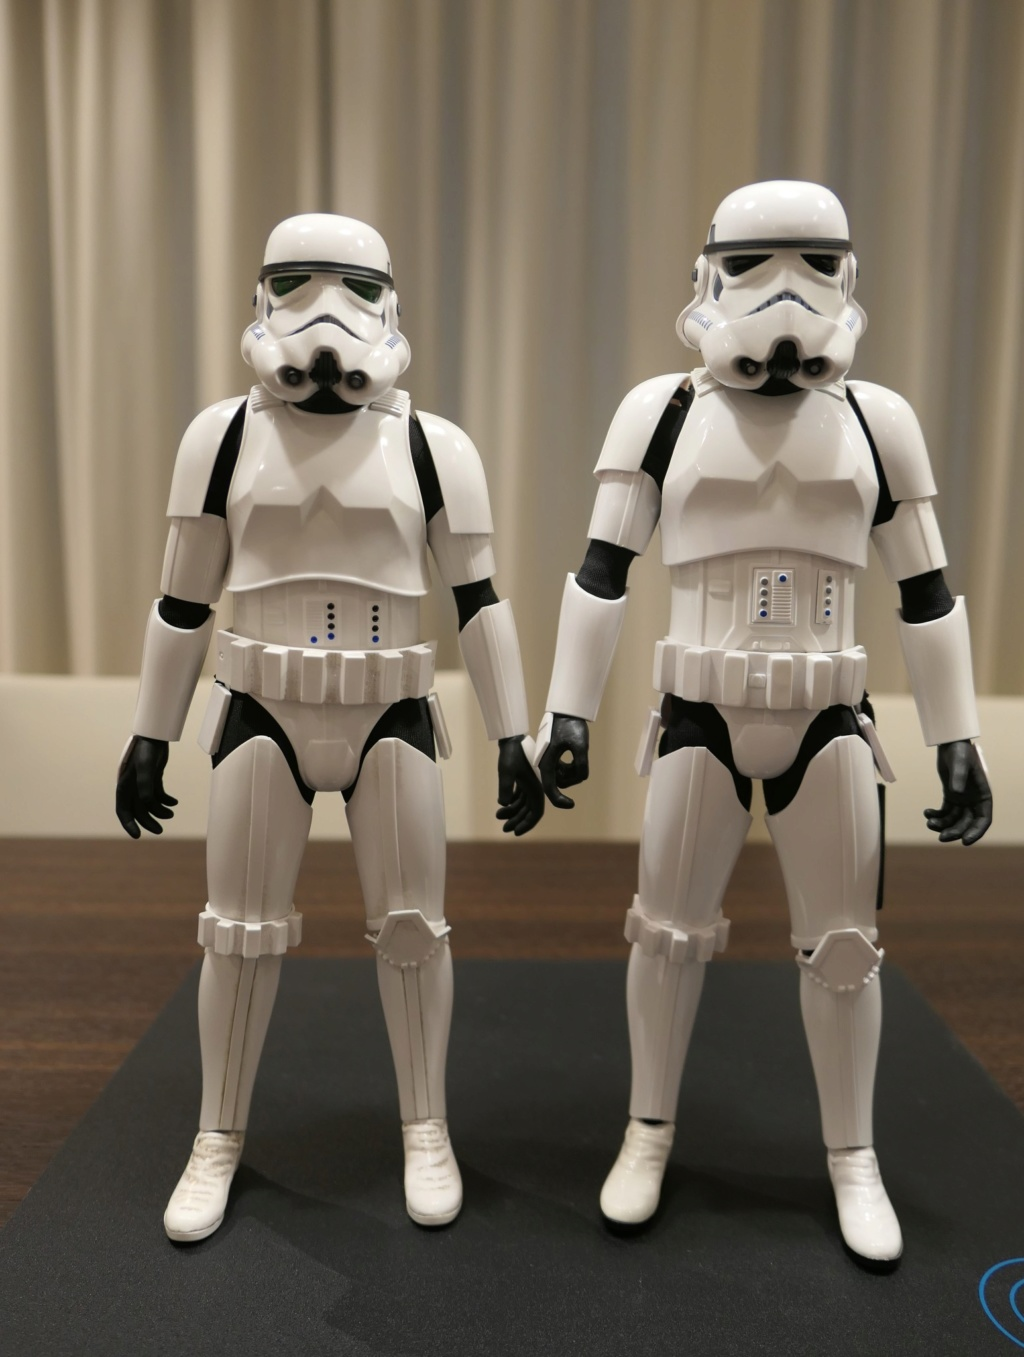 stormtrooper - NEW PRODUCT: HOT TOYS: STAR WARS STORMTROOPER (DELUXE VERSION) 1/6TH SCALE COLLECTIBLE FIGURE Vfe1dt10